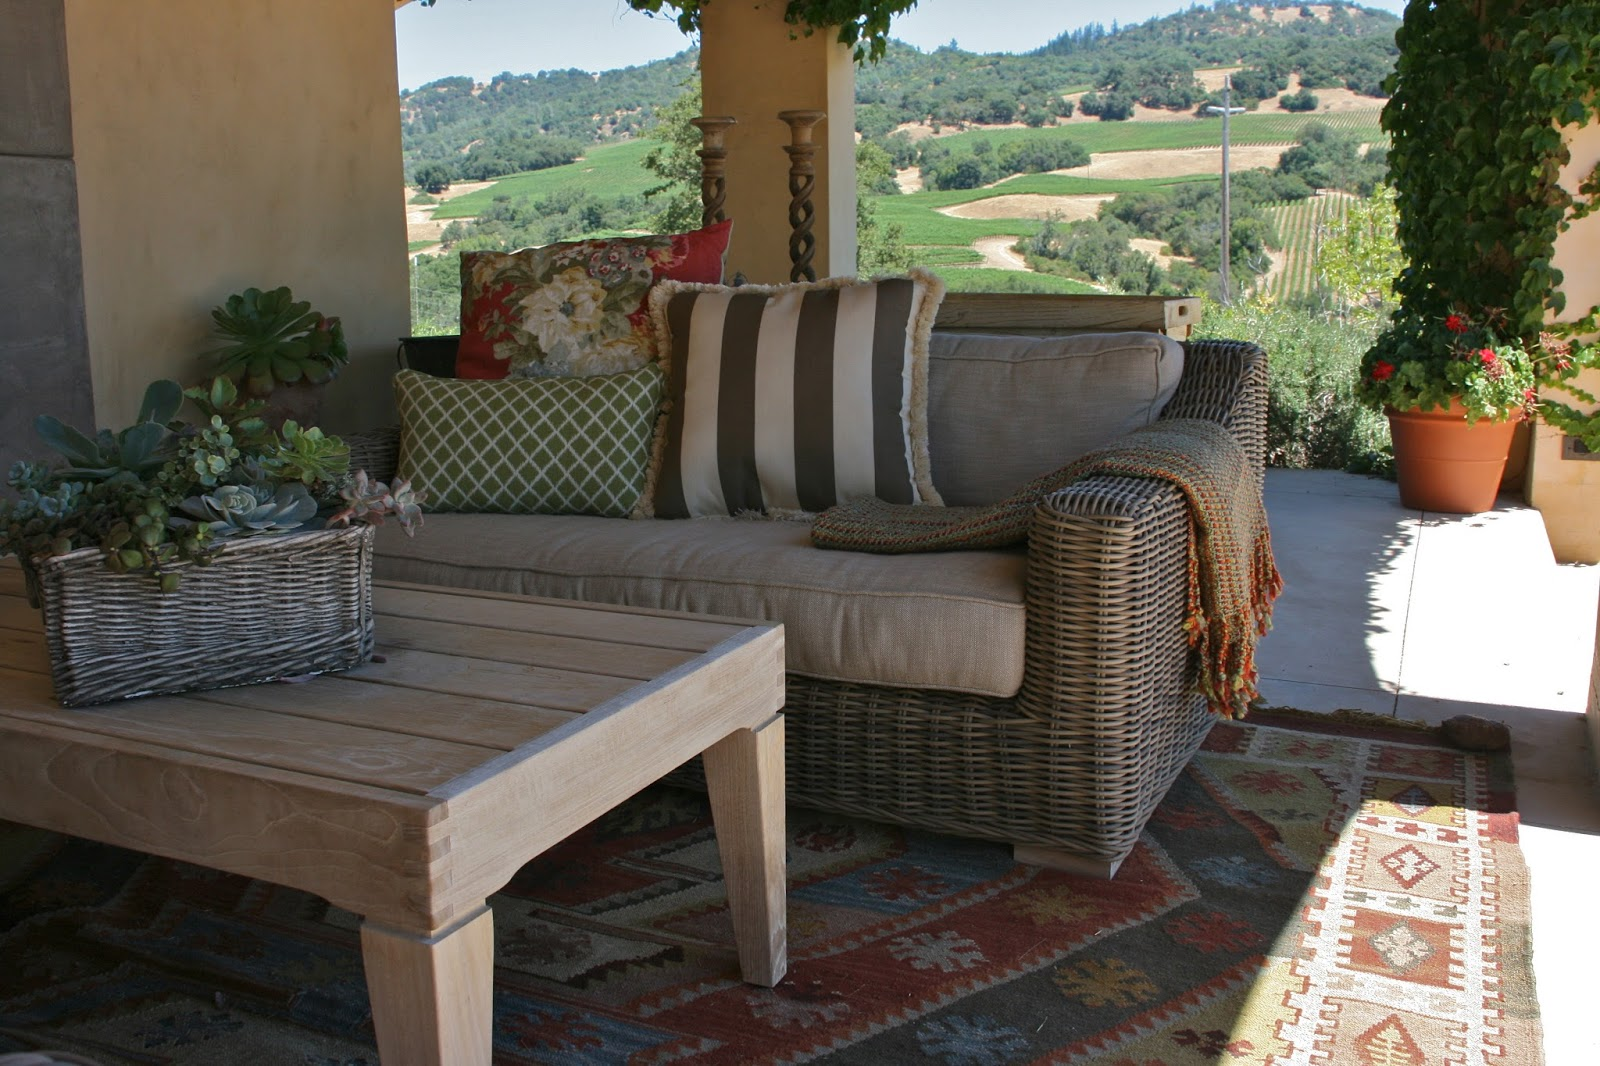 vignette design just in time for summer new cushion reveal monday june 17 2013